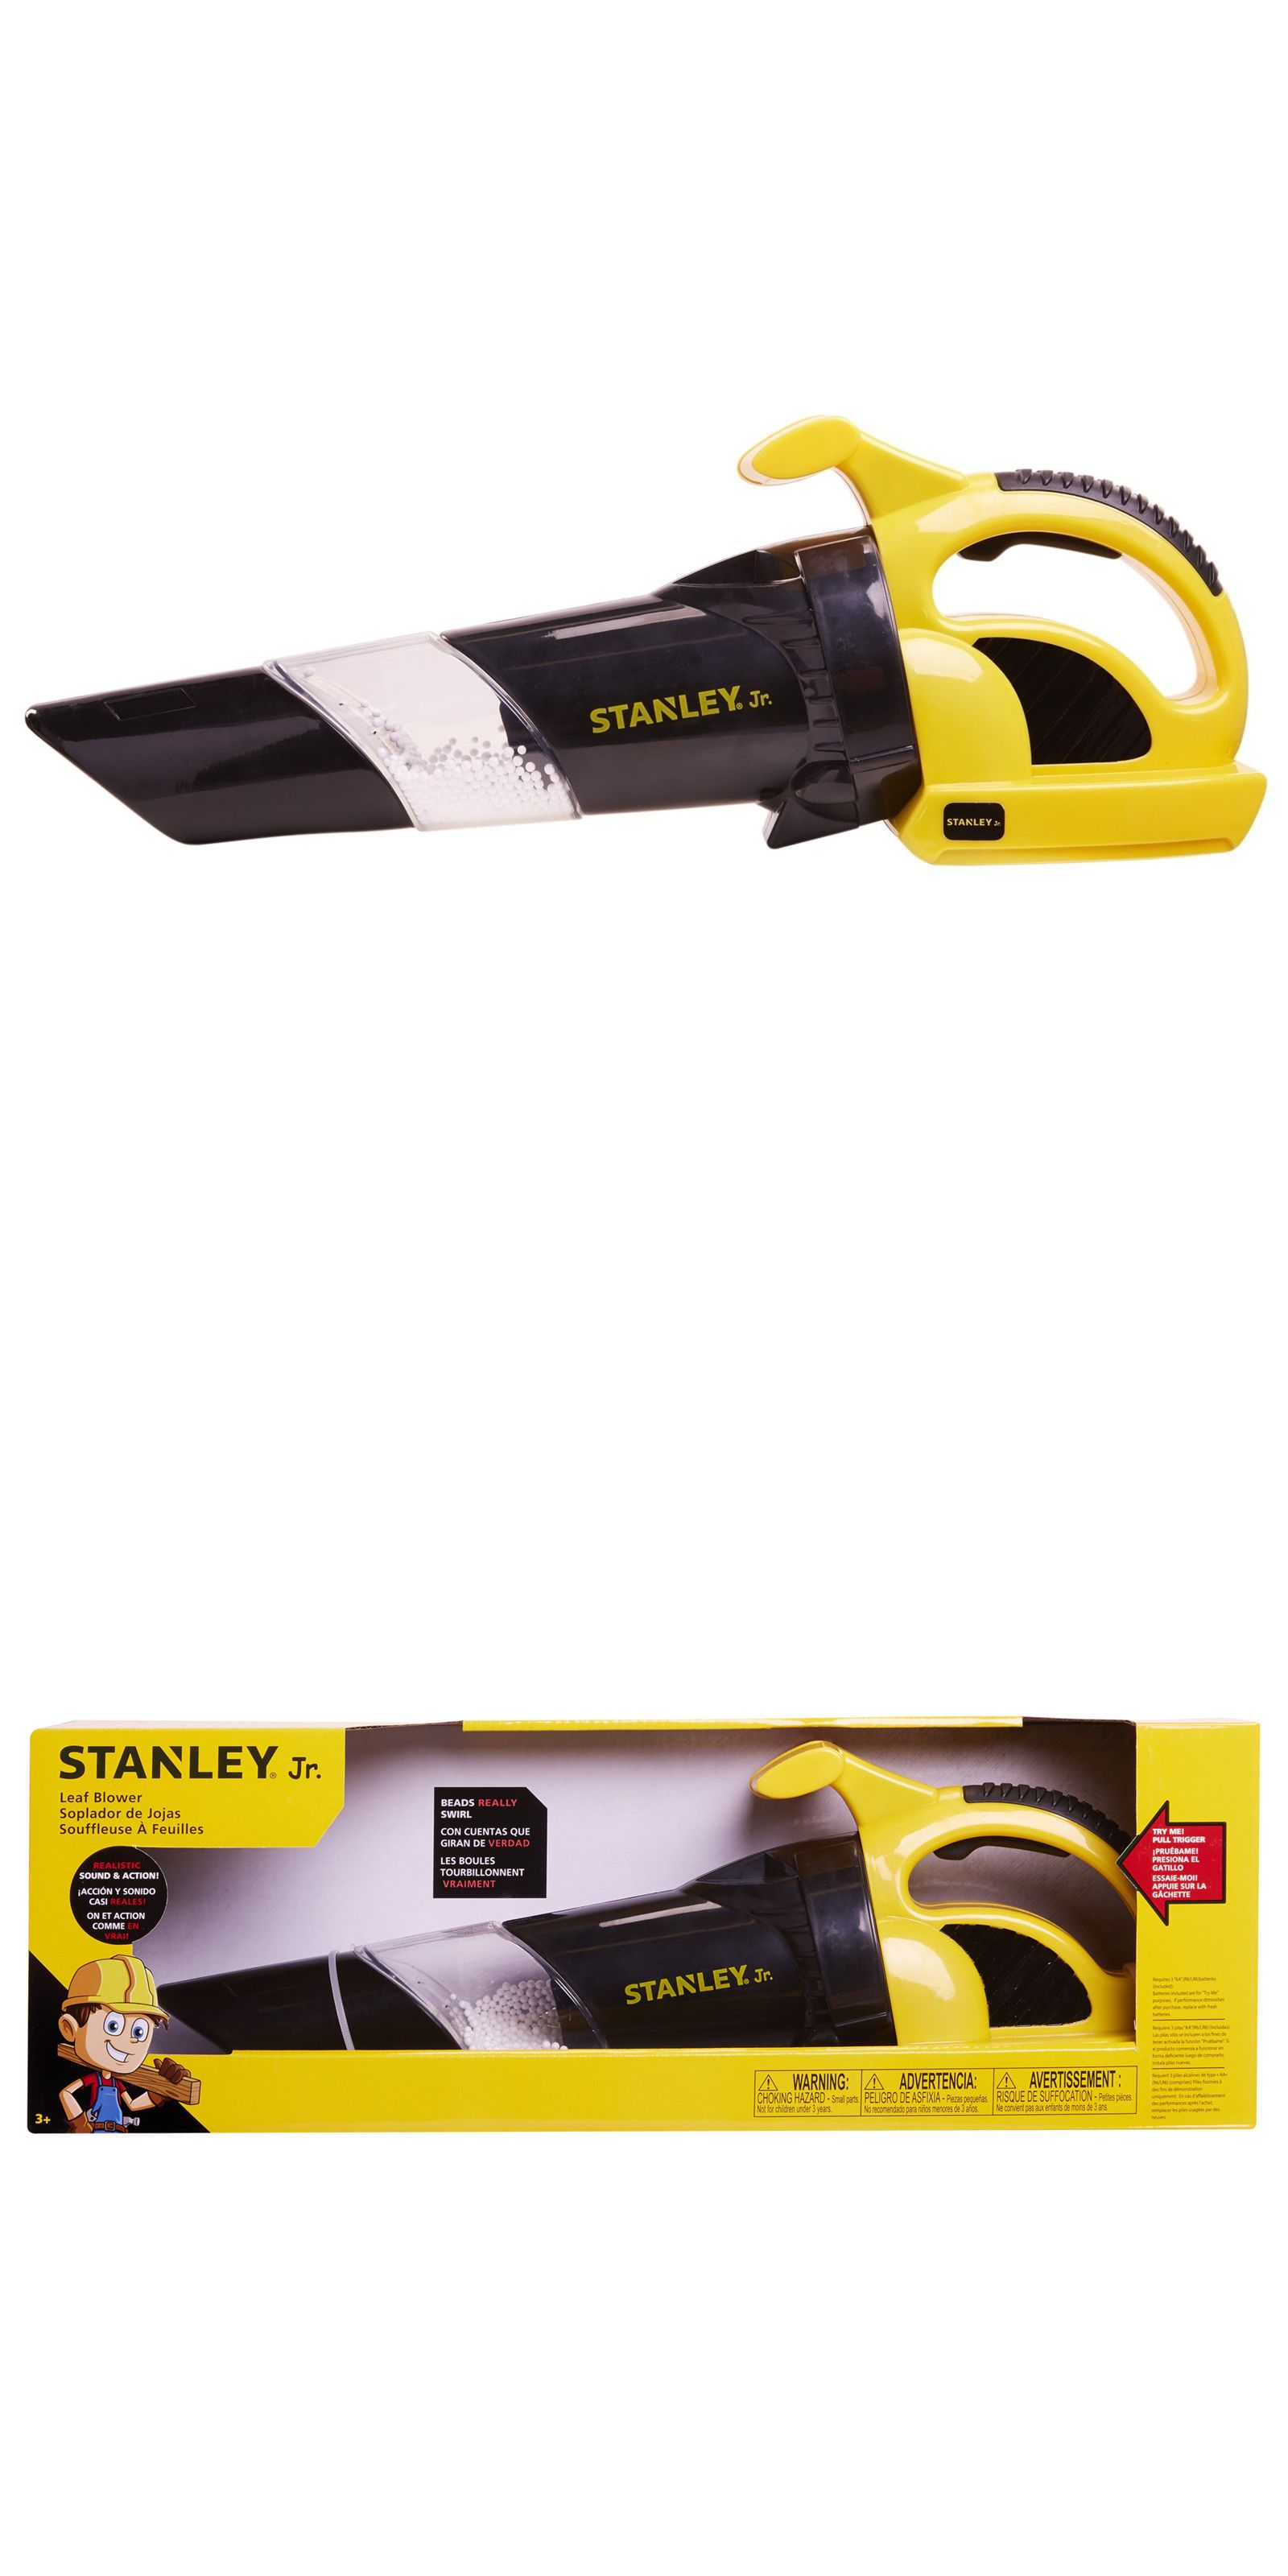 Peachy Tool Sets 158747 Stanley Jr Leaf Blower Workshop Tools Toys Gamerscity Chair Design For Home Gamerscityorg